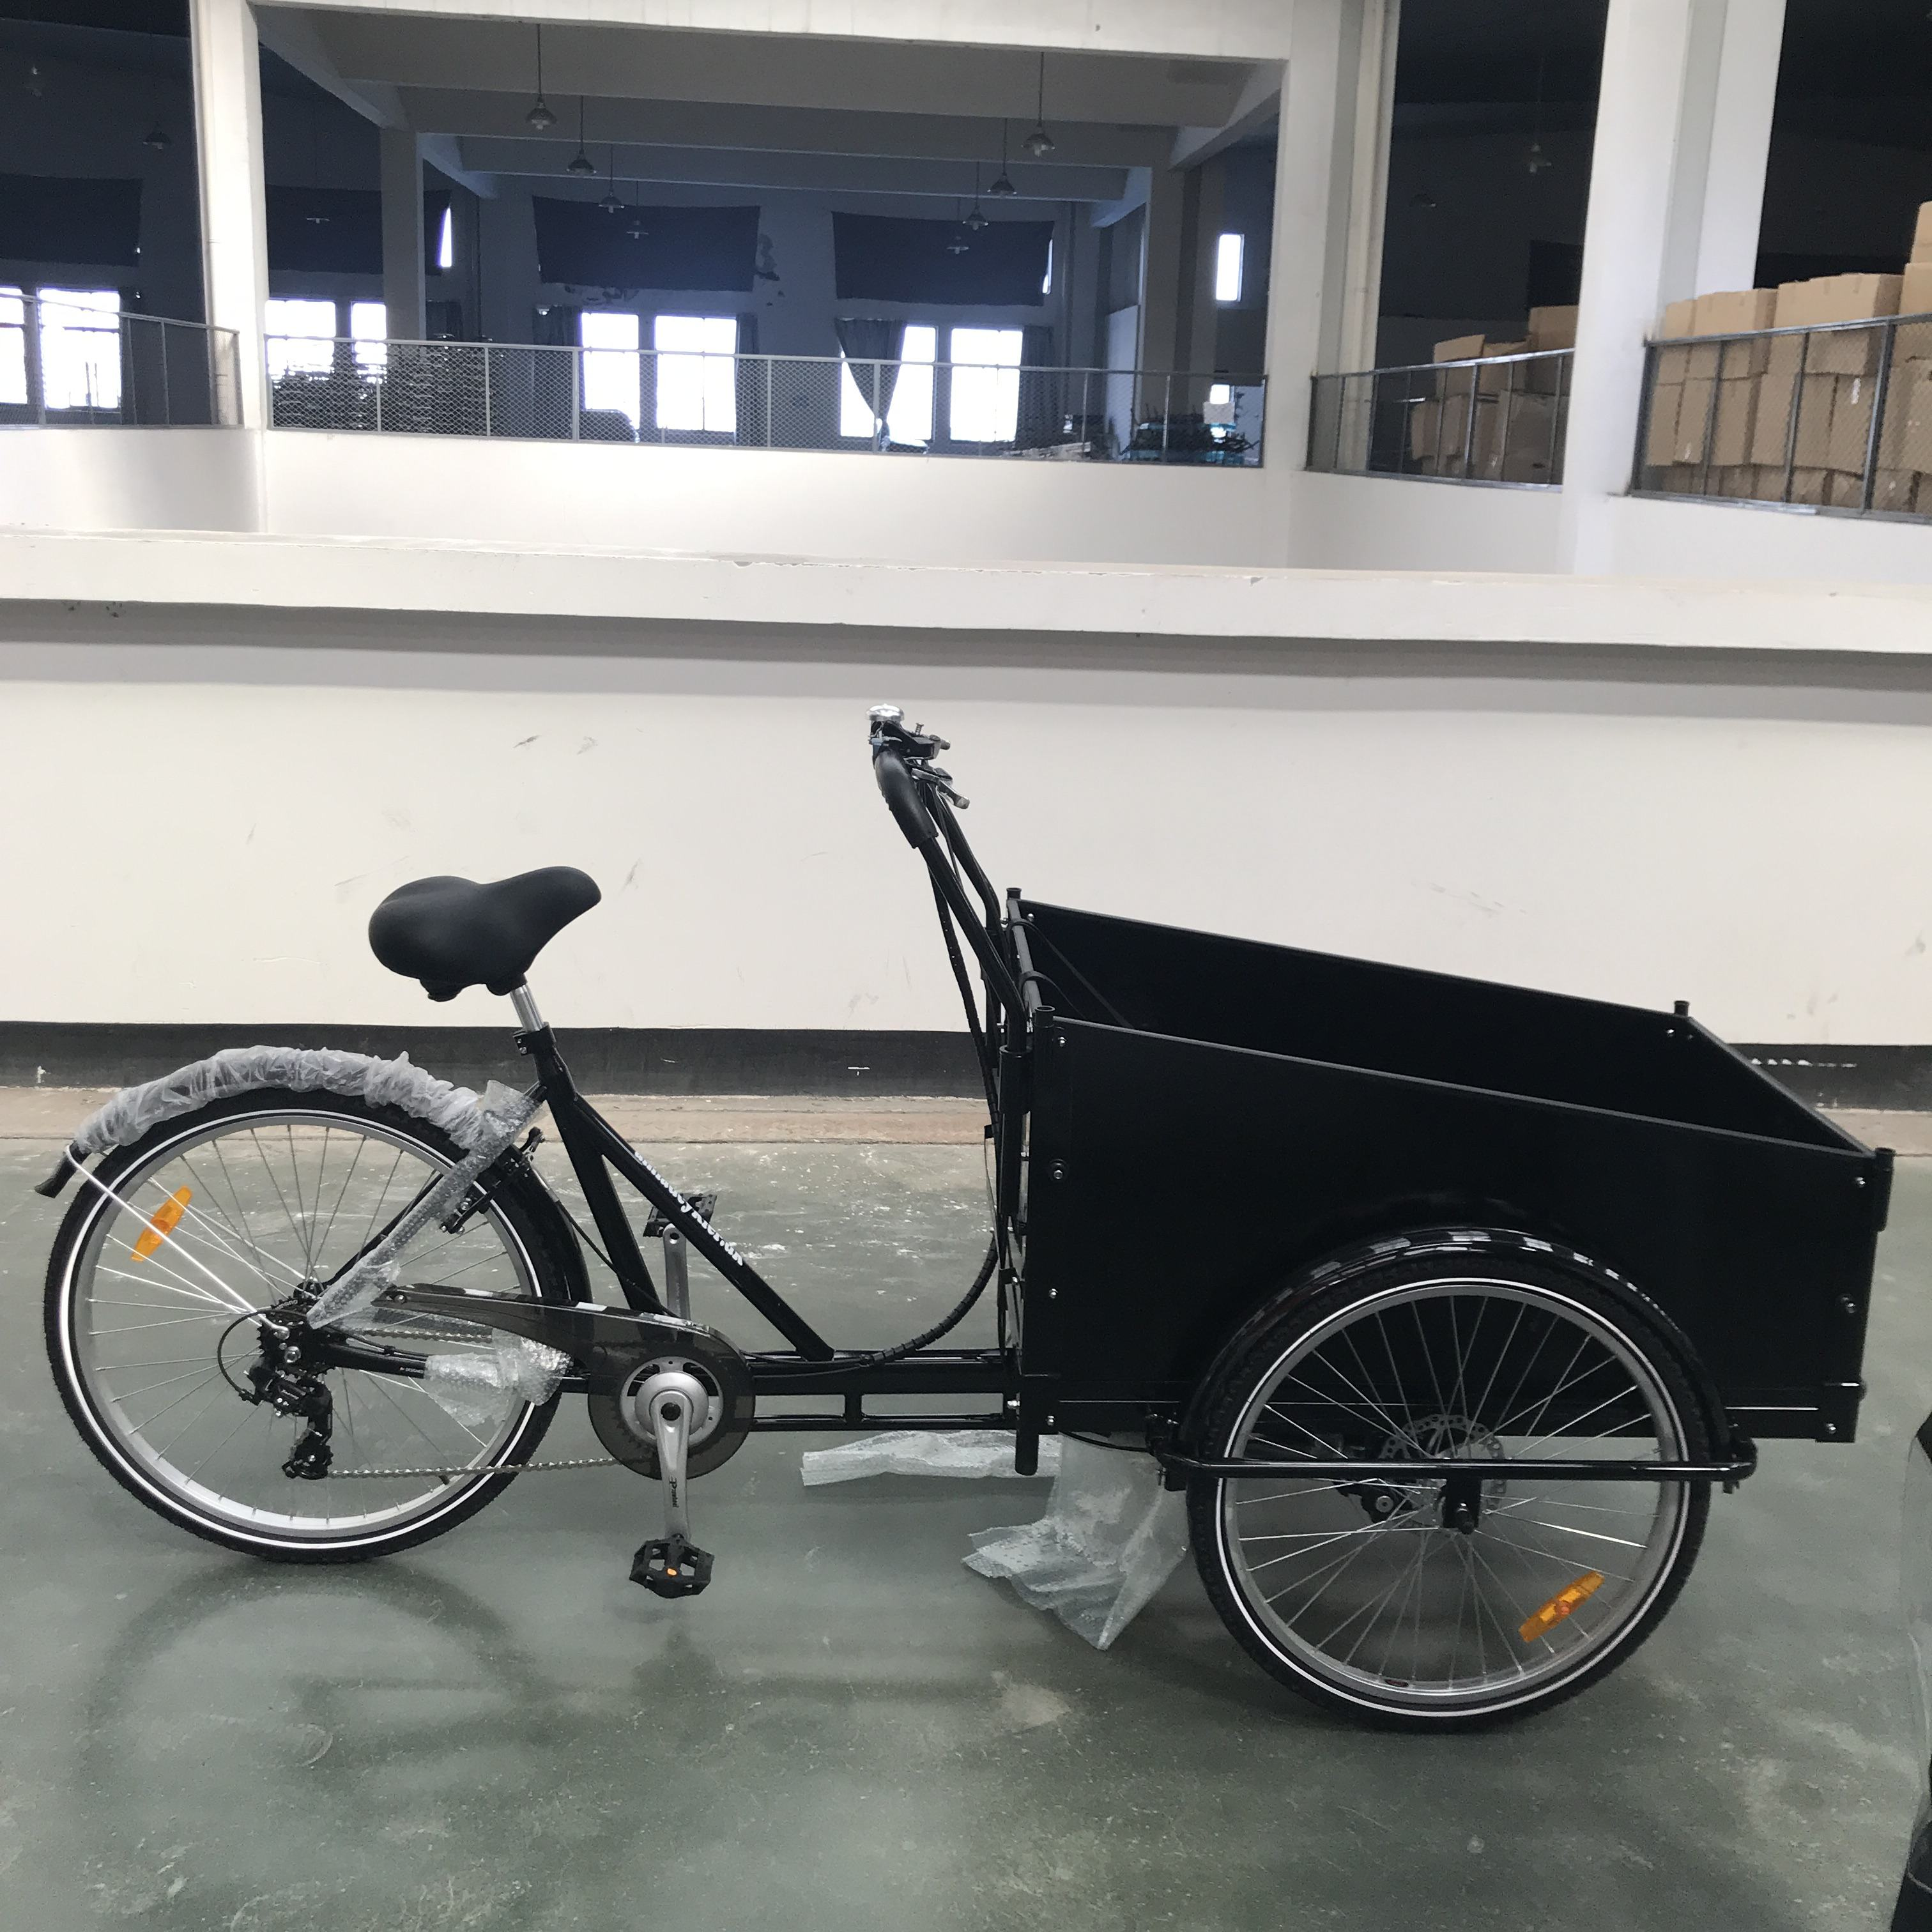 nanyang/clamber 9027 Fashion adult cargo bike(24'',26'') could carry kids or cargo in 3 wheels with 6 speeds and V brake